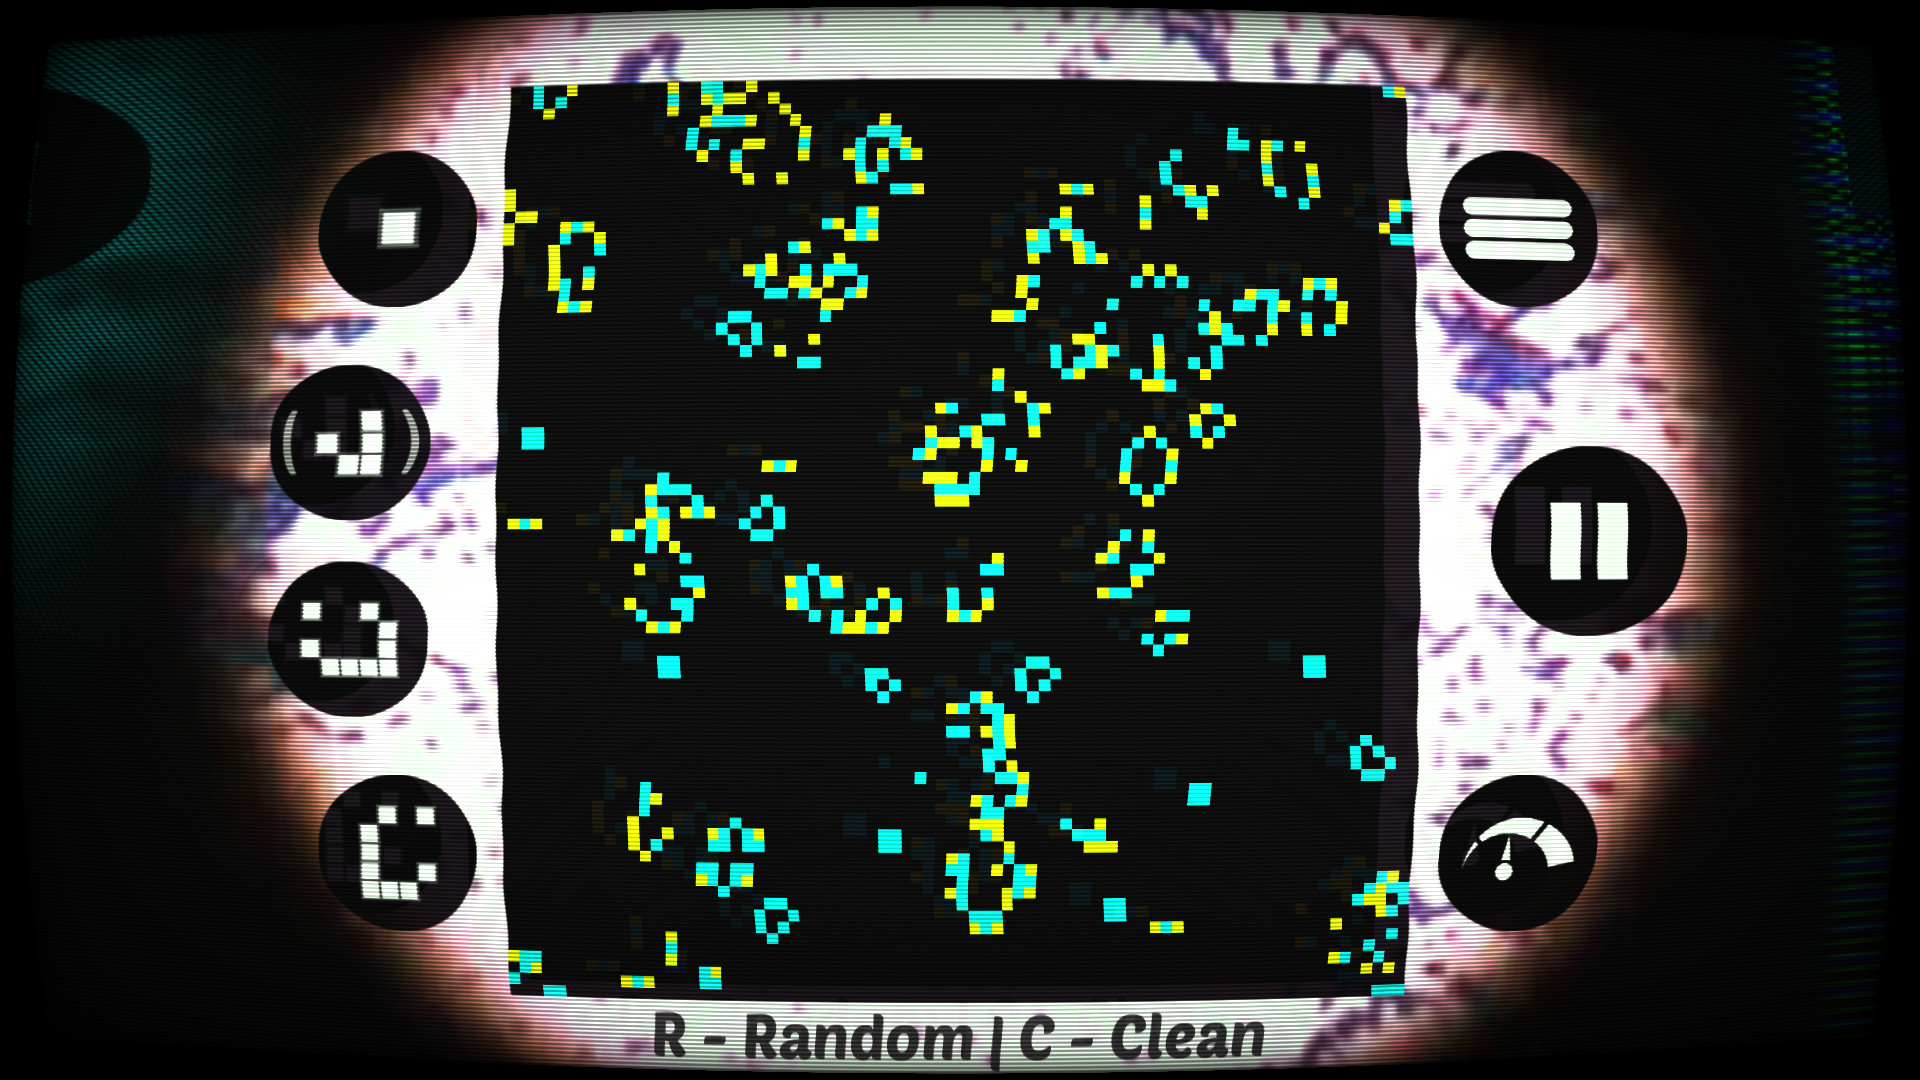 Bacteria screenshot